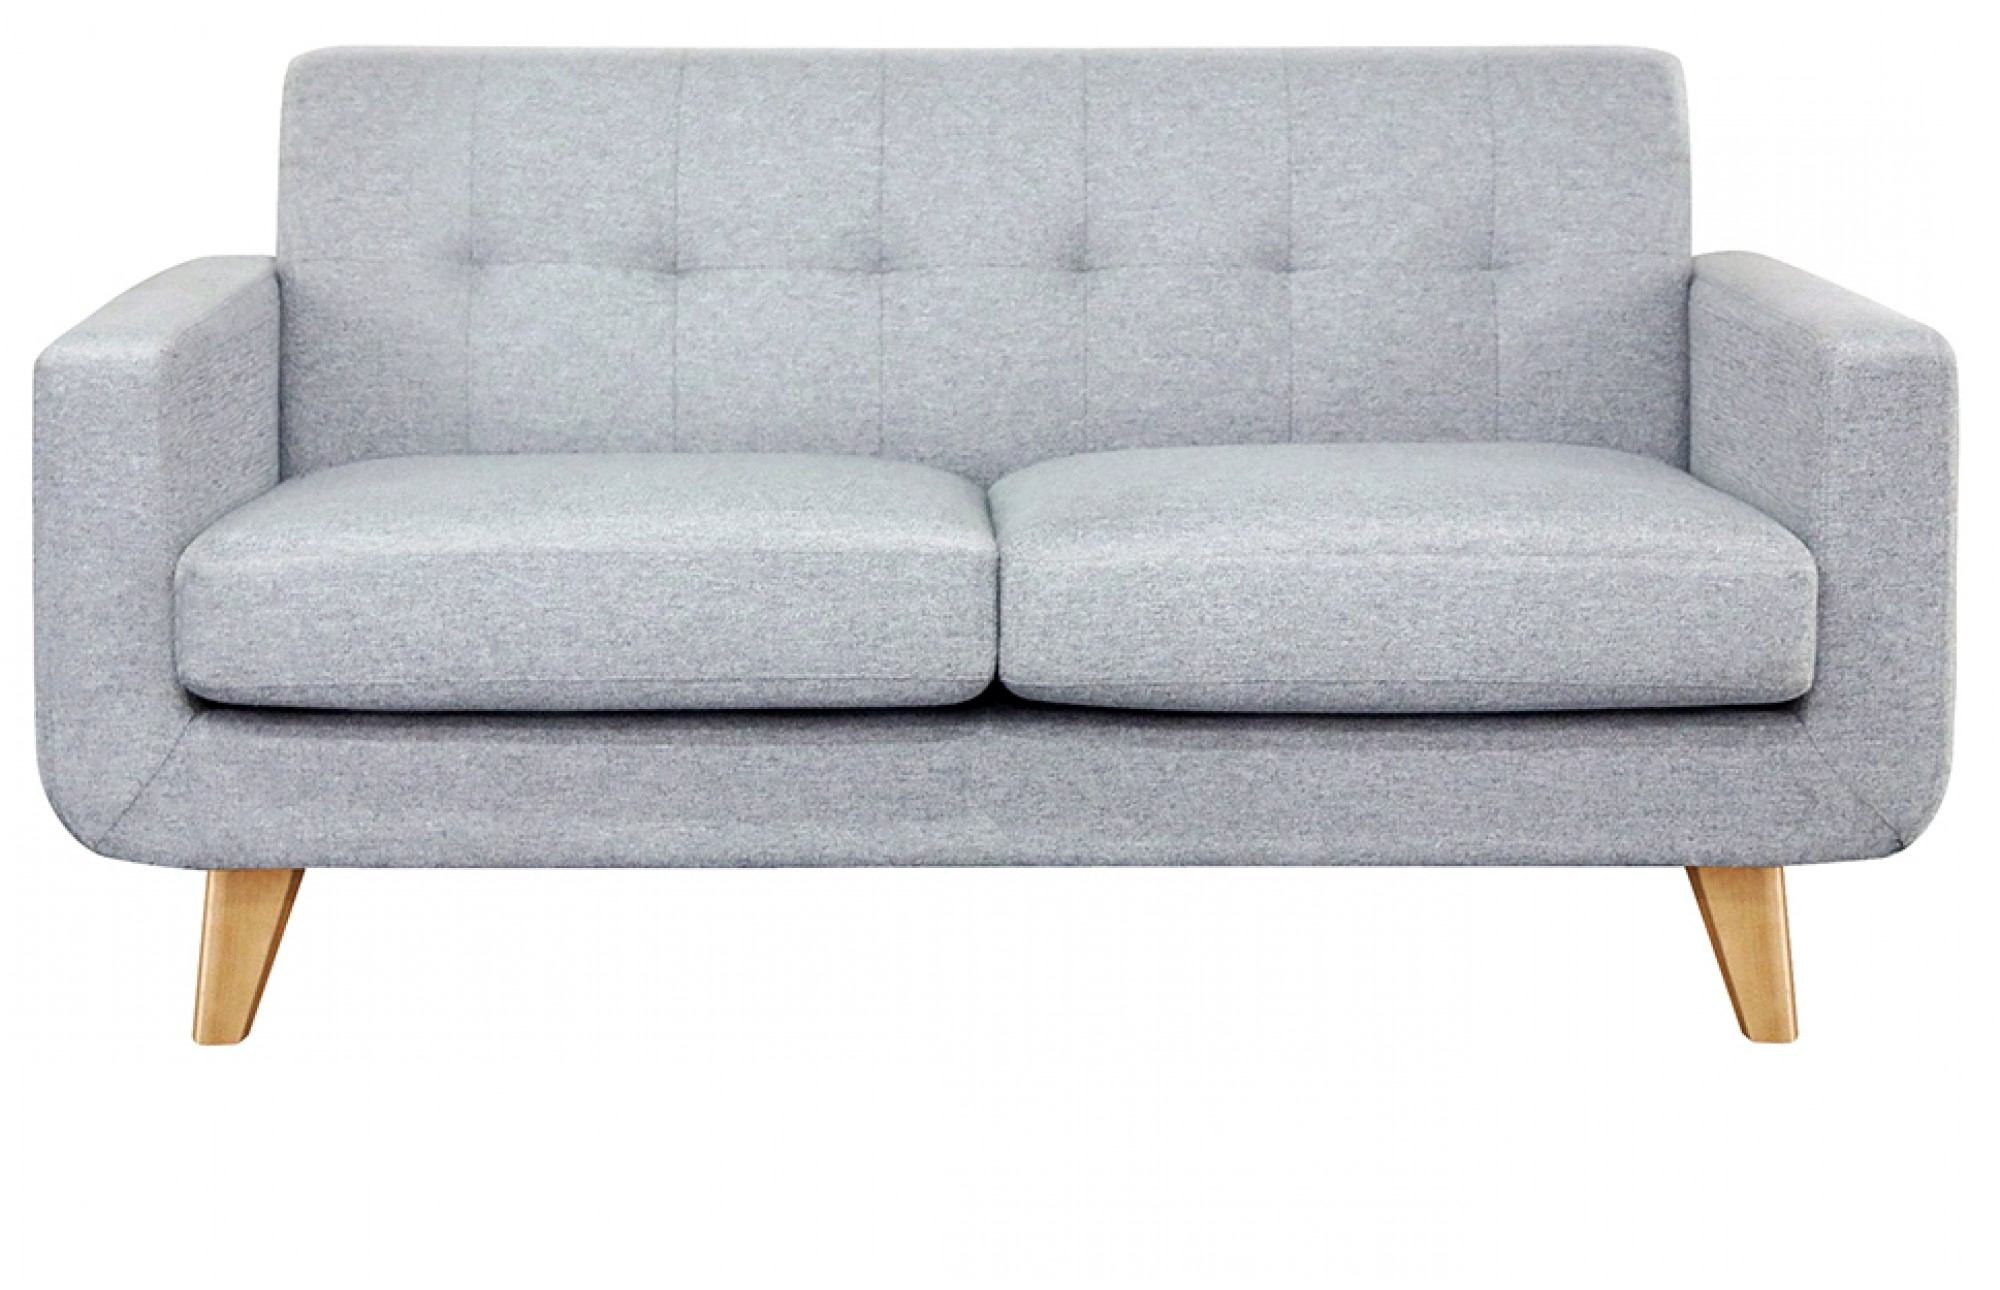 Widely Used Two Seater Sofas For Grey 2 Seater Sofa – Oak Legs Lounge Furniture – Out & Out Original (View 2 of 20)